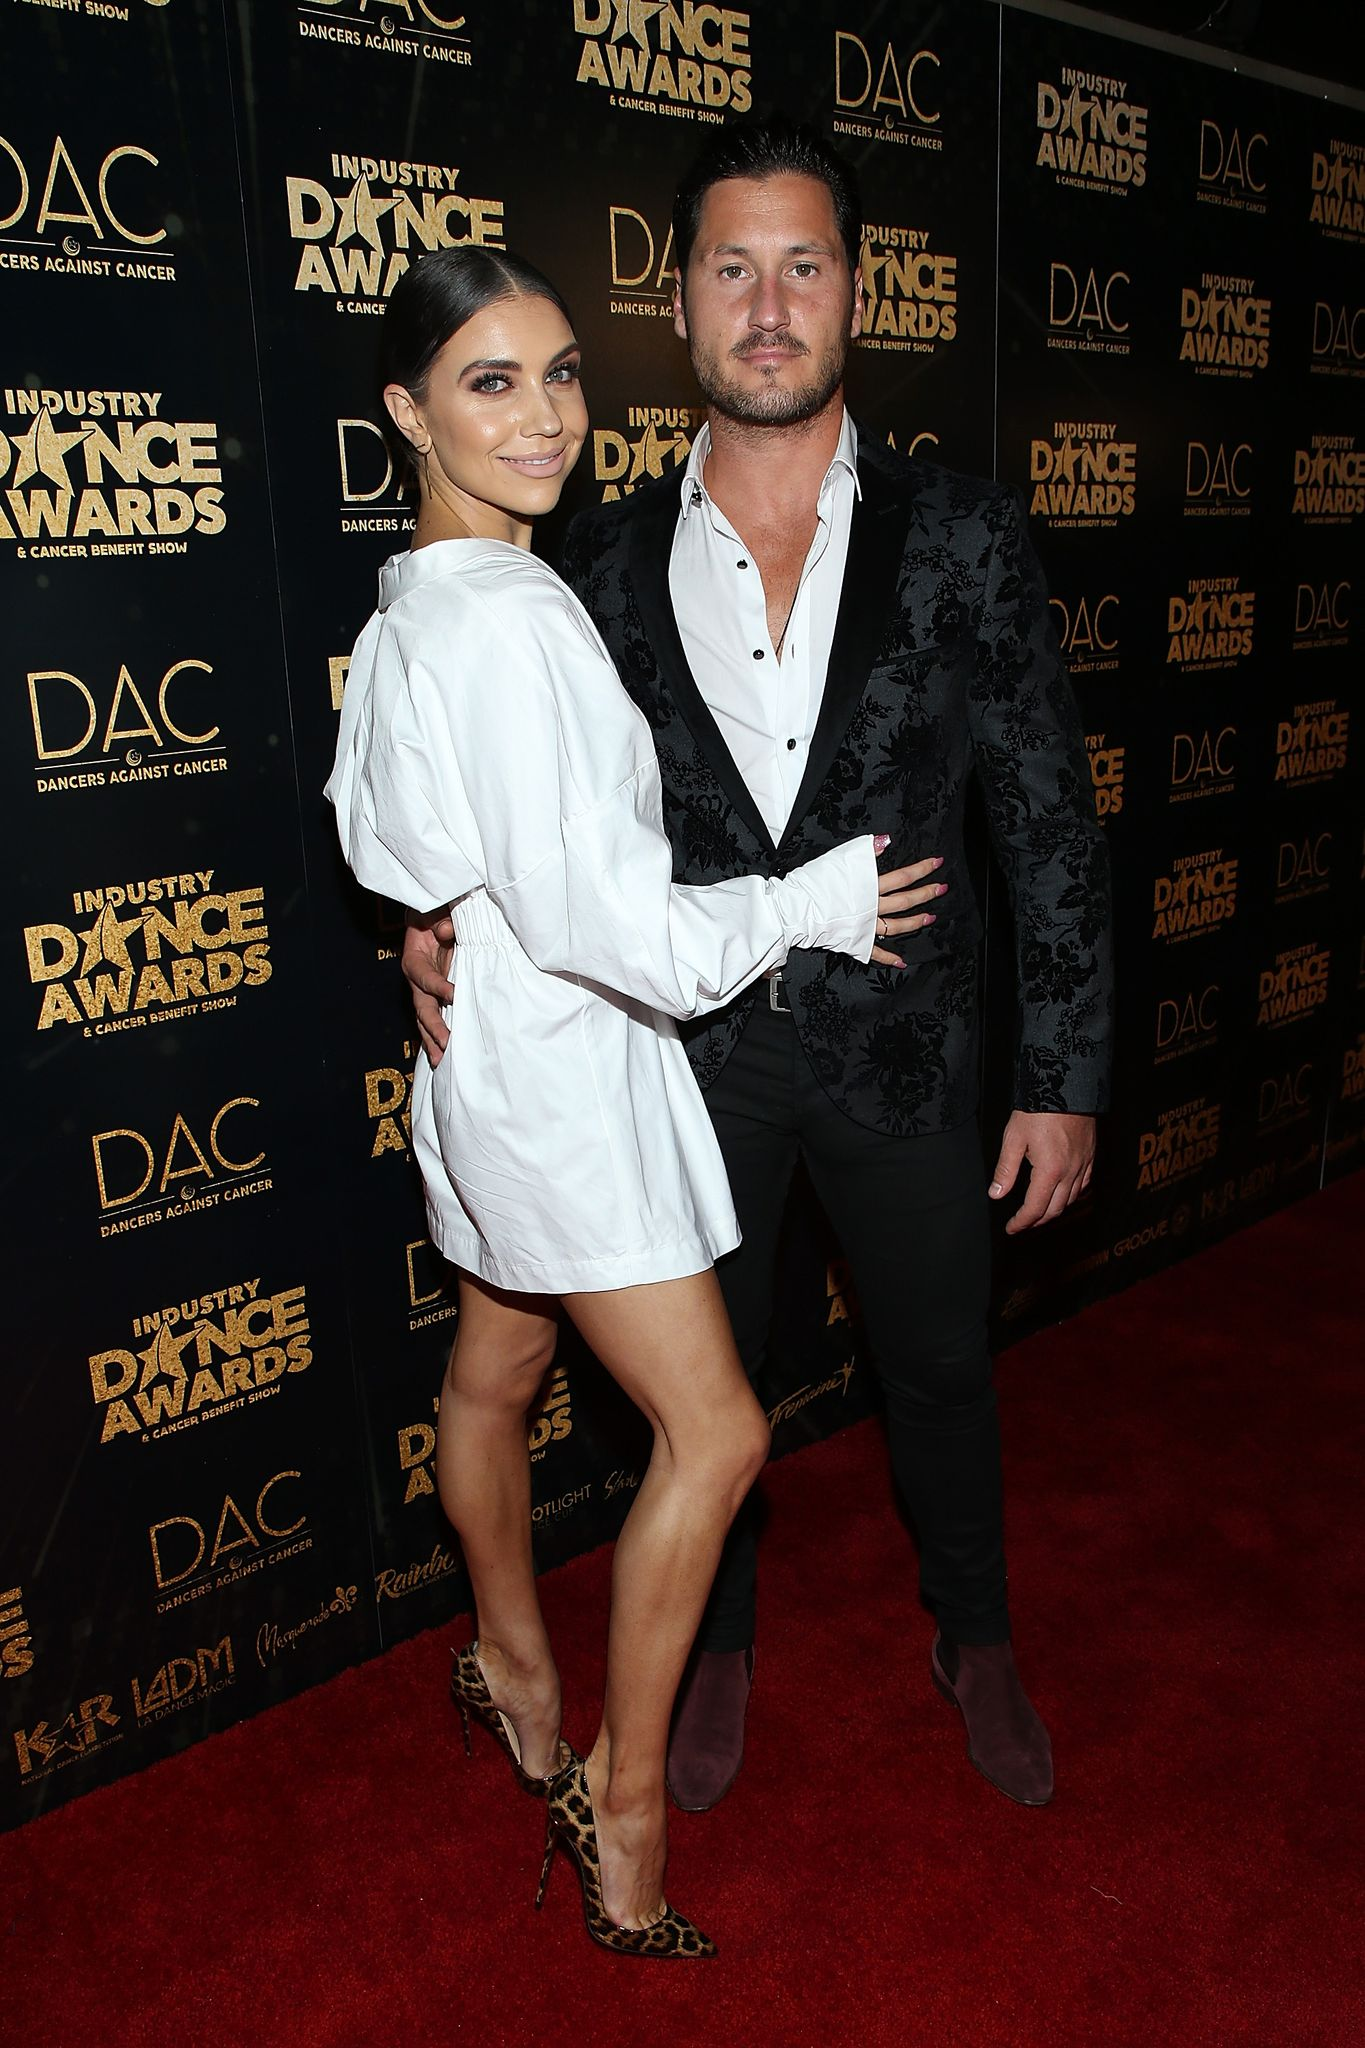 Jenna Johnson and Valentin Chmerkovskiy at the 2018 Industry Dance Awards in Los Angeles | Source: Getty Images